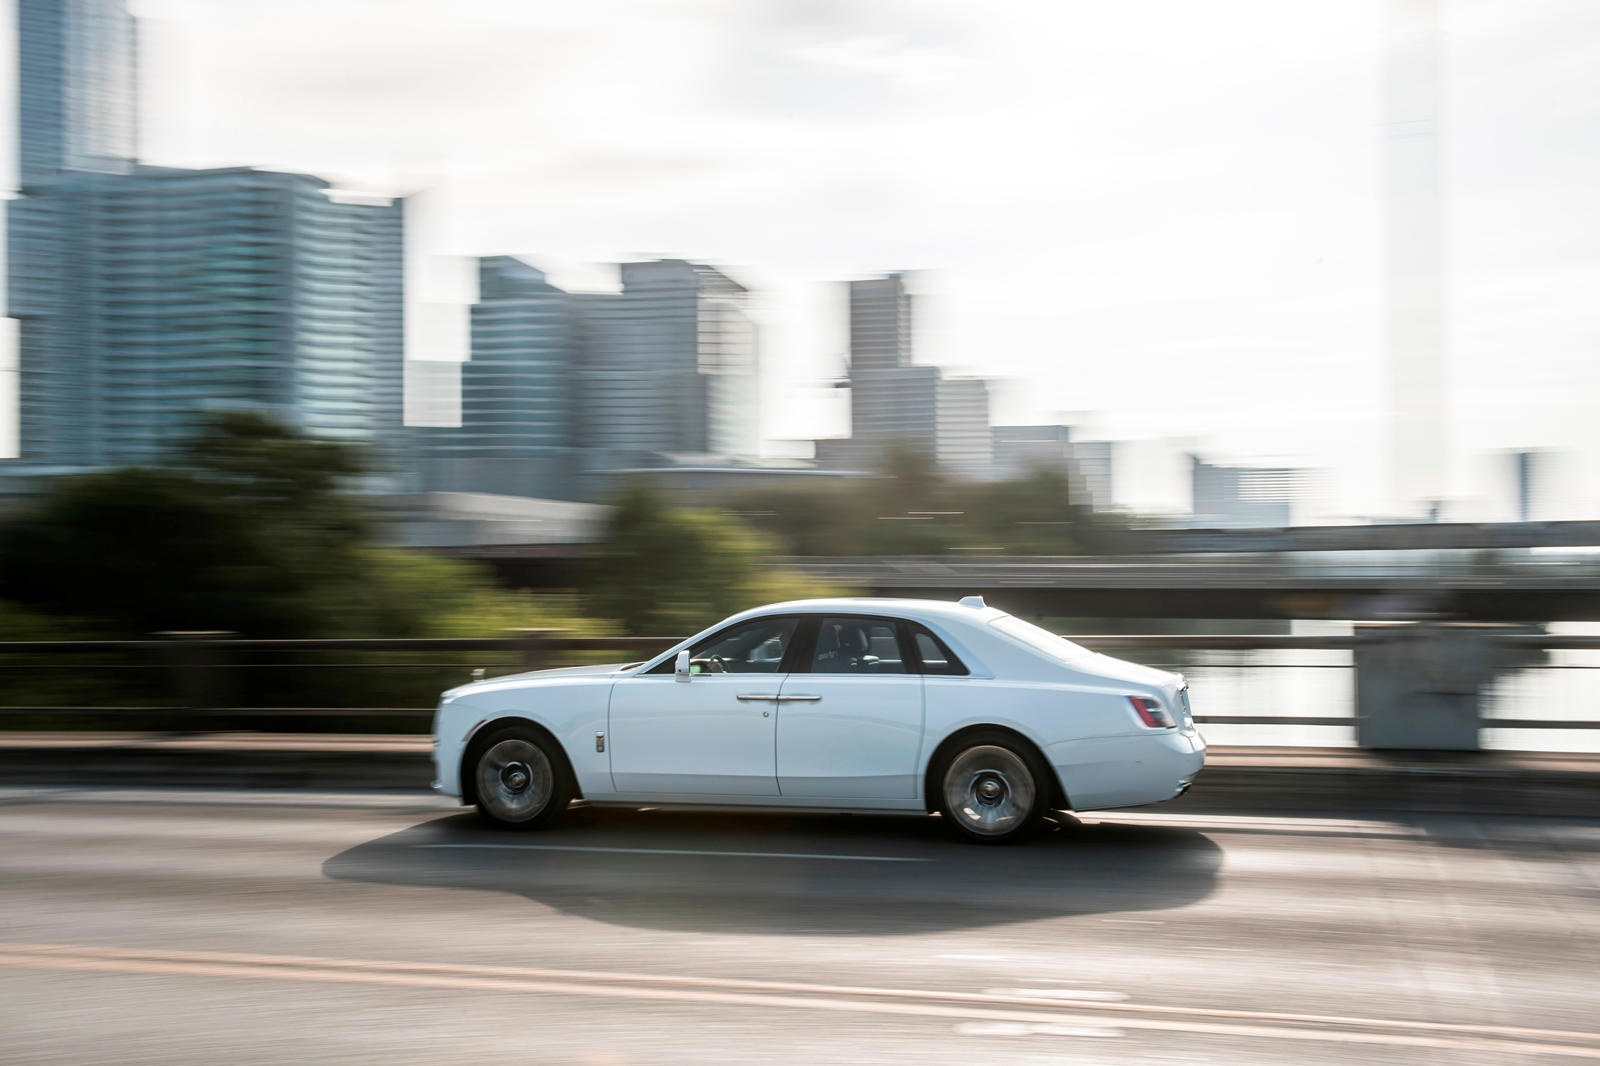 Danh gia Rolls-Royce Ghost 2021 anh 28